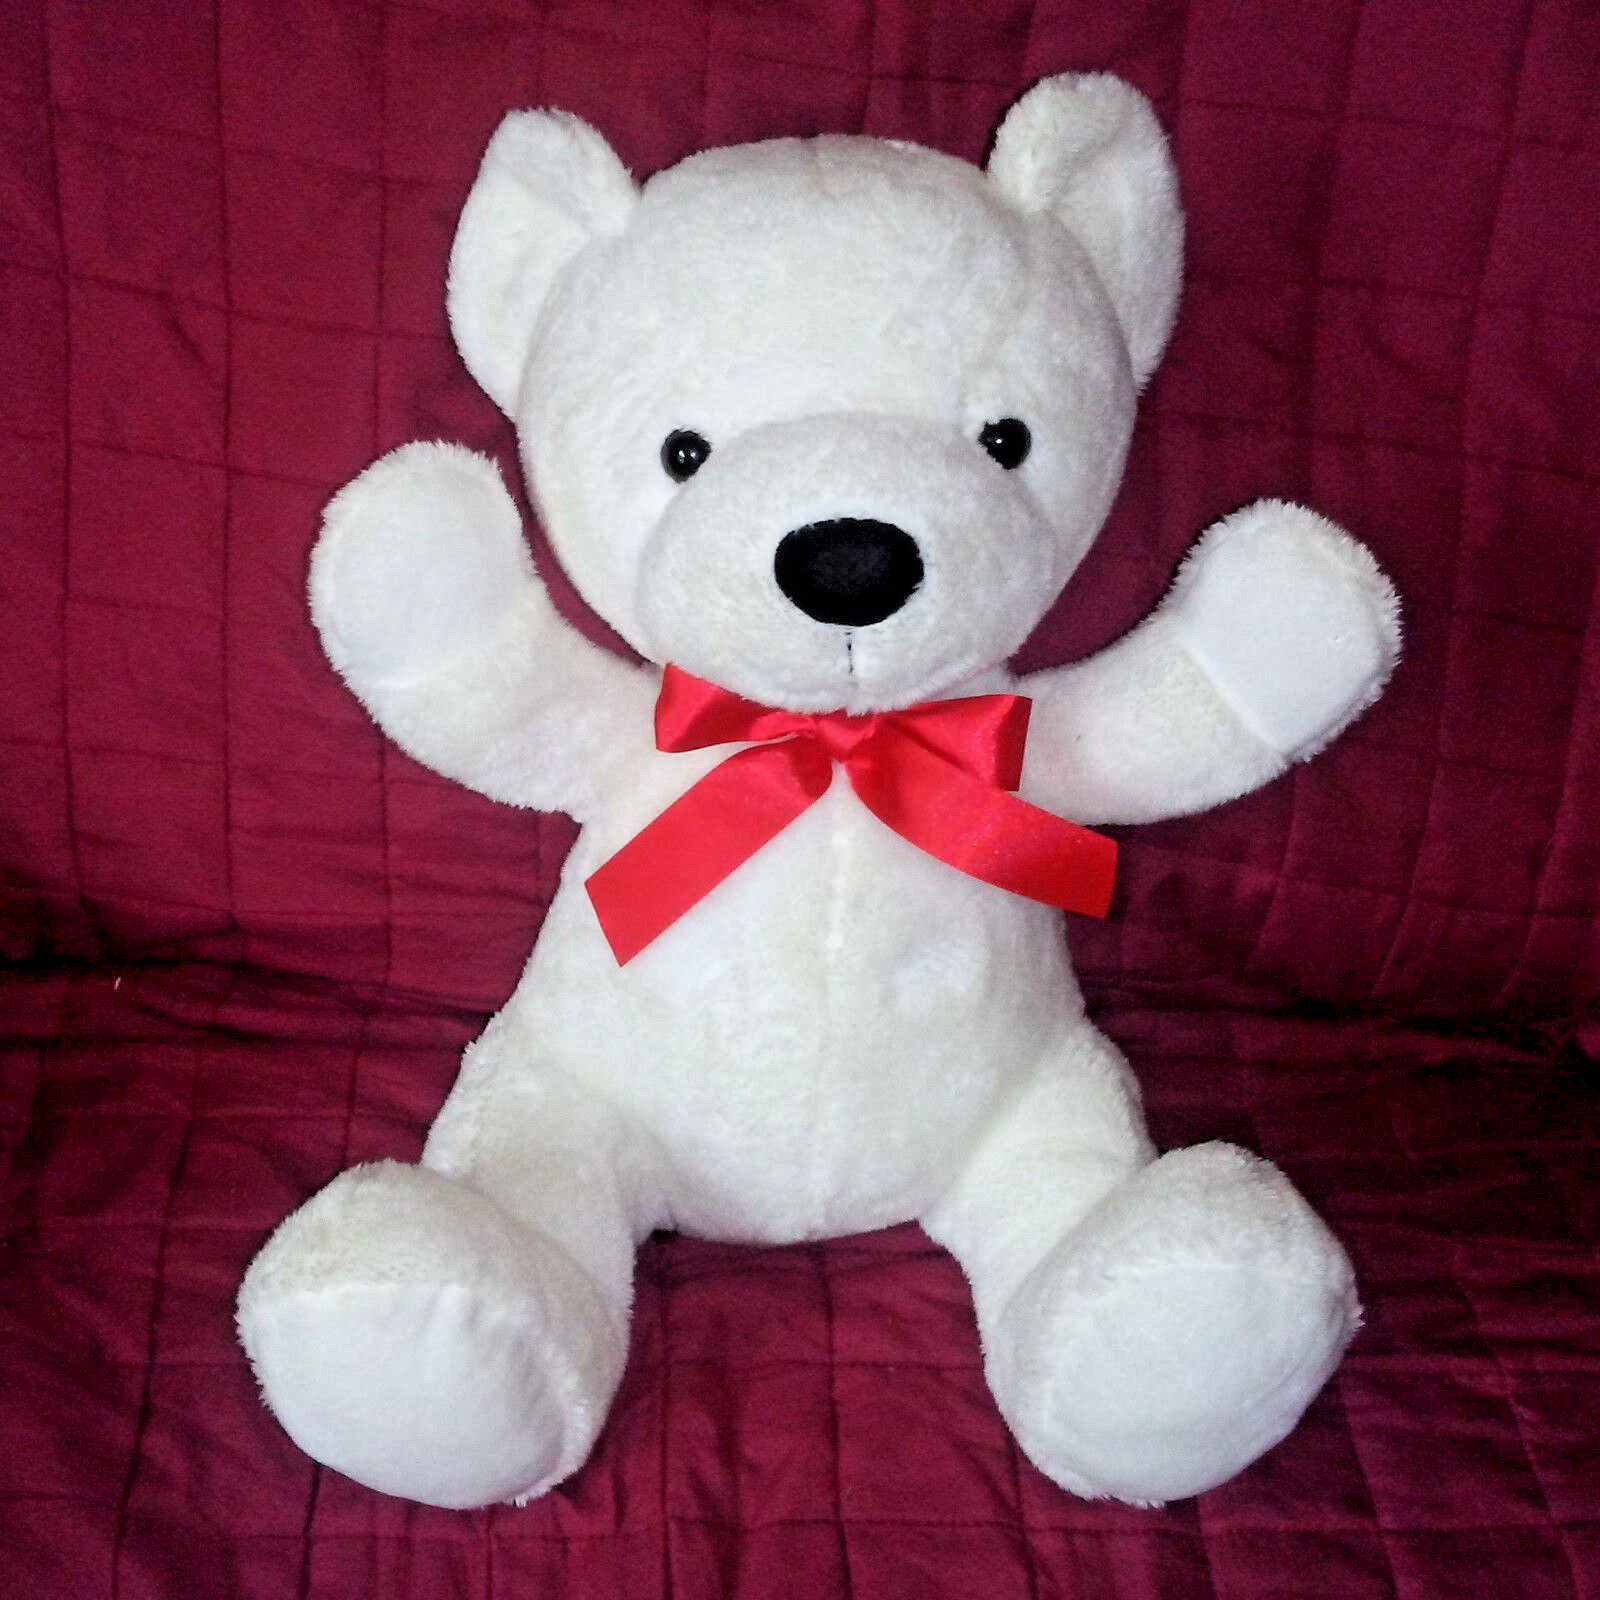 Hugfun Intl Sample TEDDY BEAR White Velour Soft 12in Sitting Plush Red Satin Bow